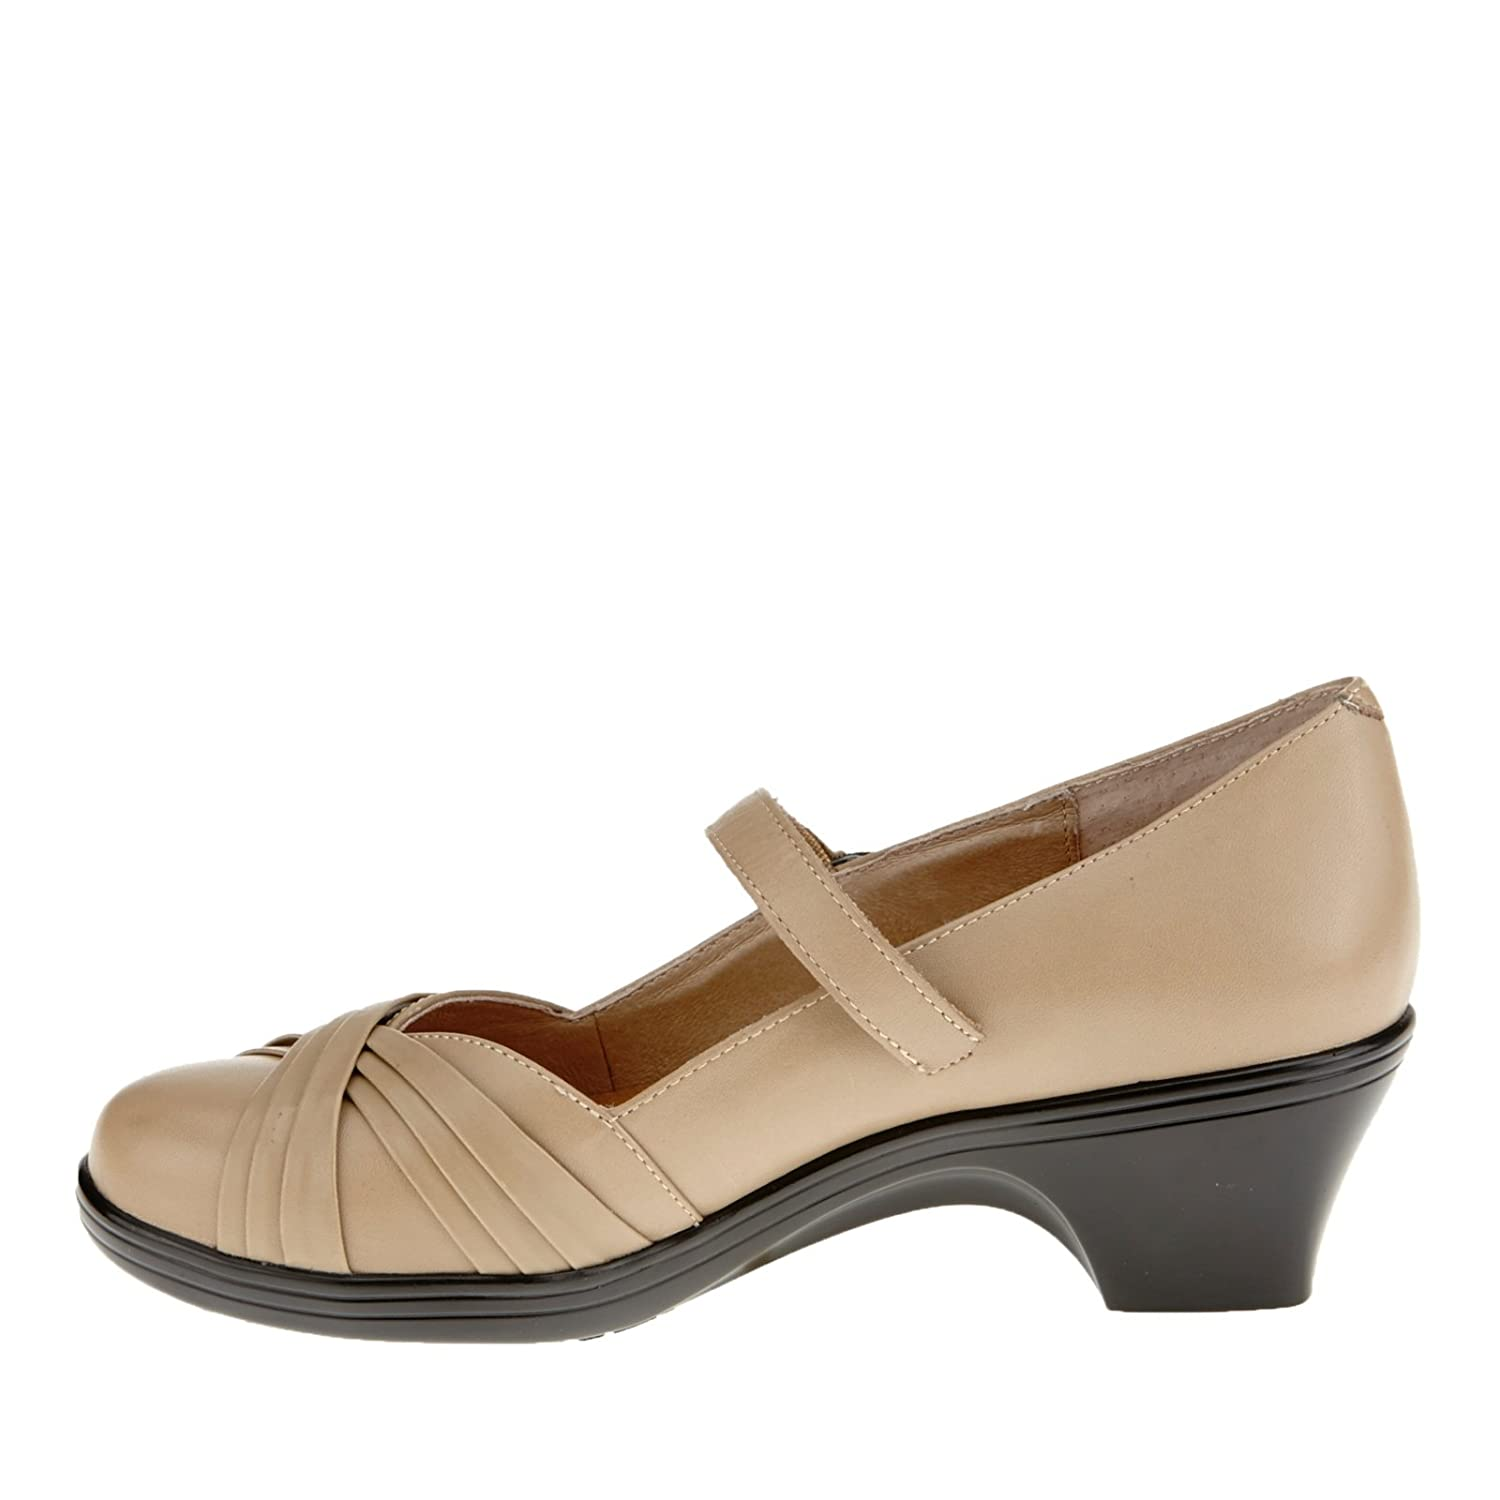 amazon com dr comfort cindee mary jane shoes shoes